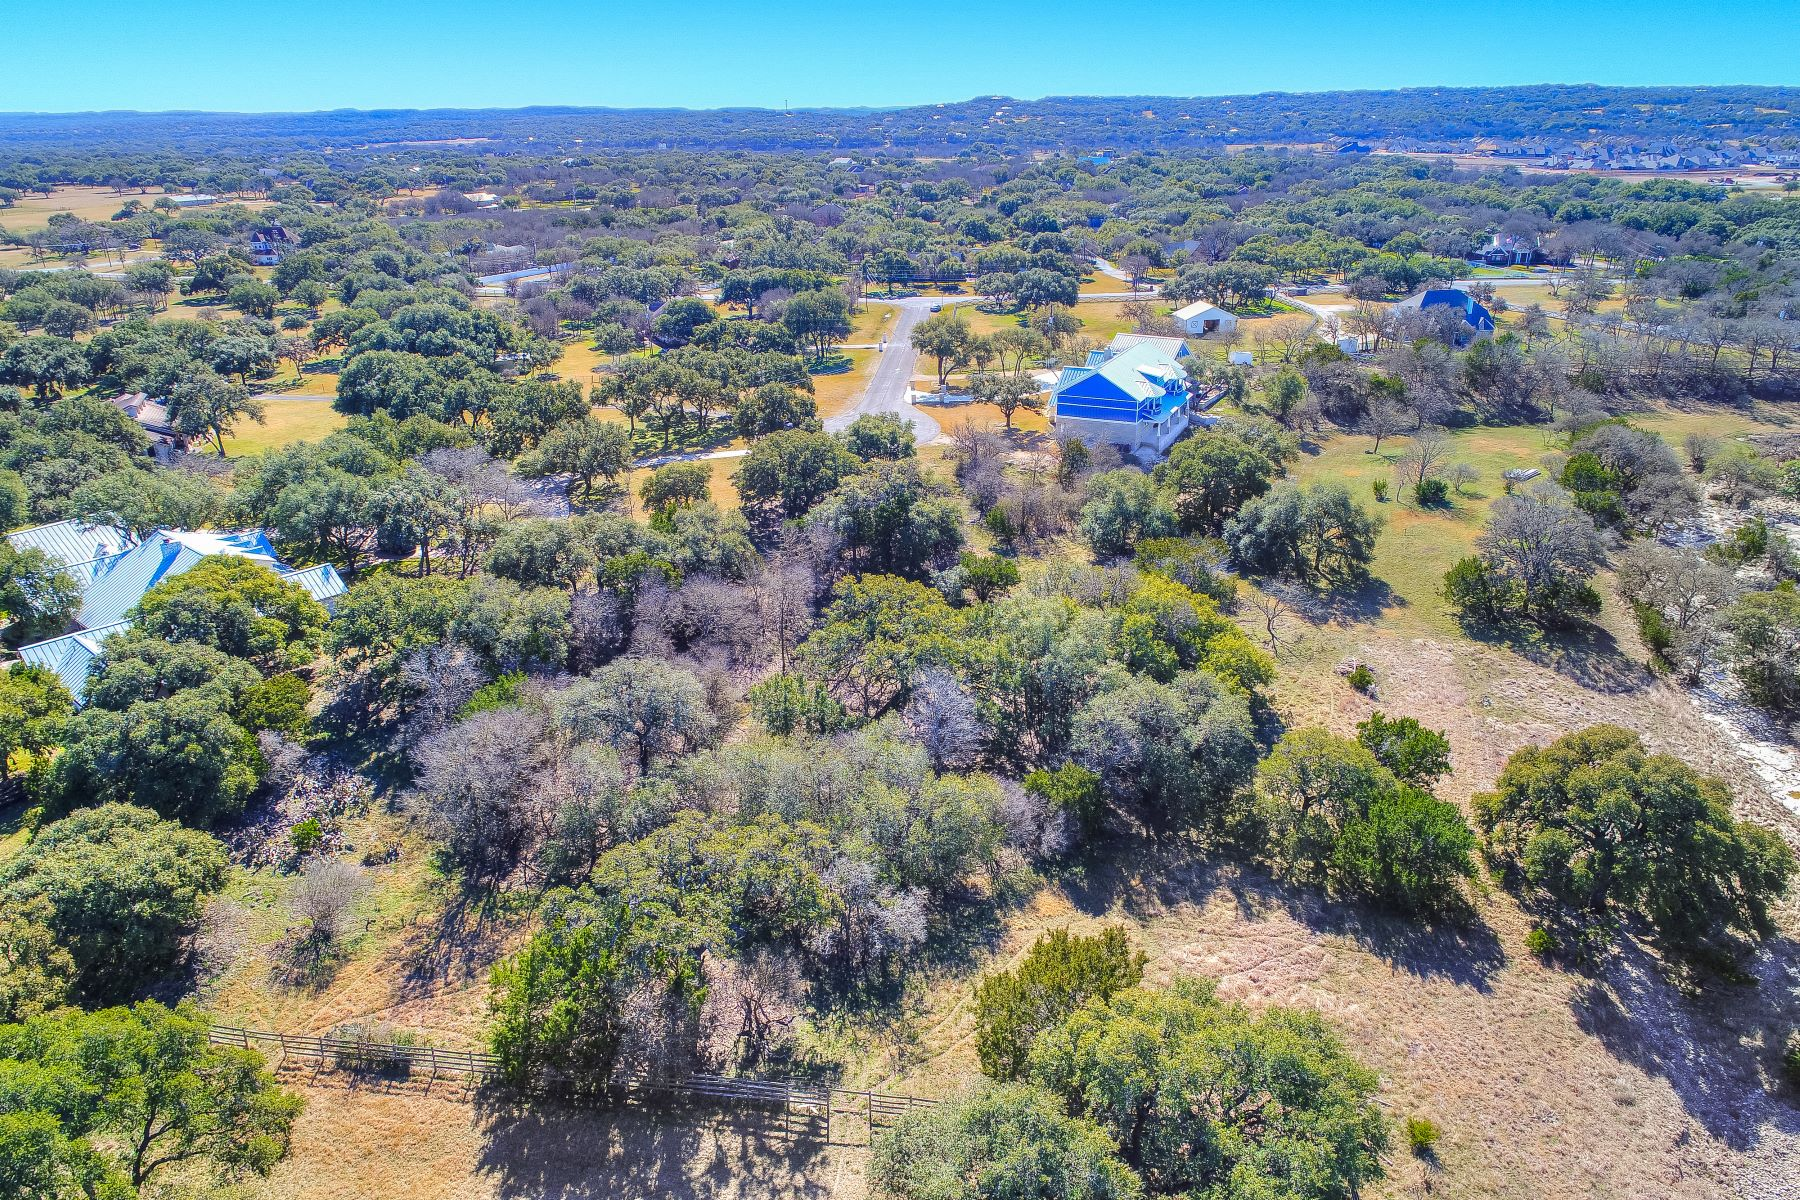 Land for Sale at Incredible cul-de-sac Property within coveted Fair Oaks Ranch 30931 Firebird Lane Fair Oaks Ranch, Texas 78015 United States